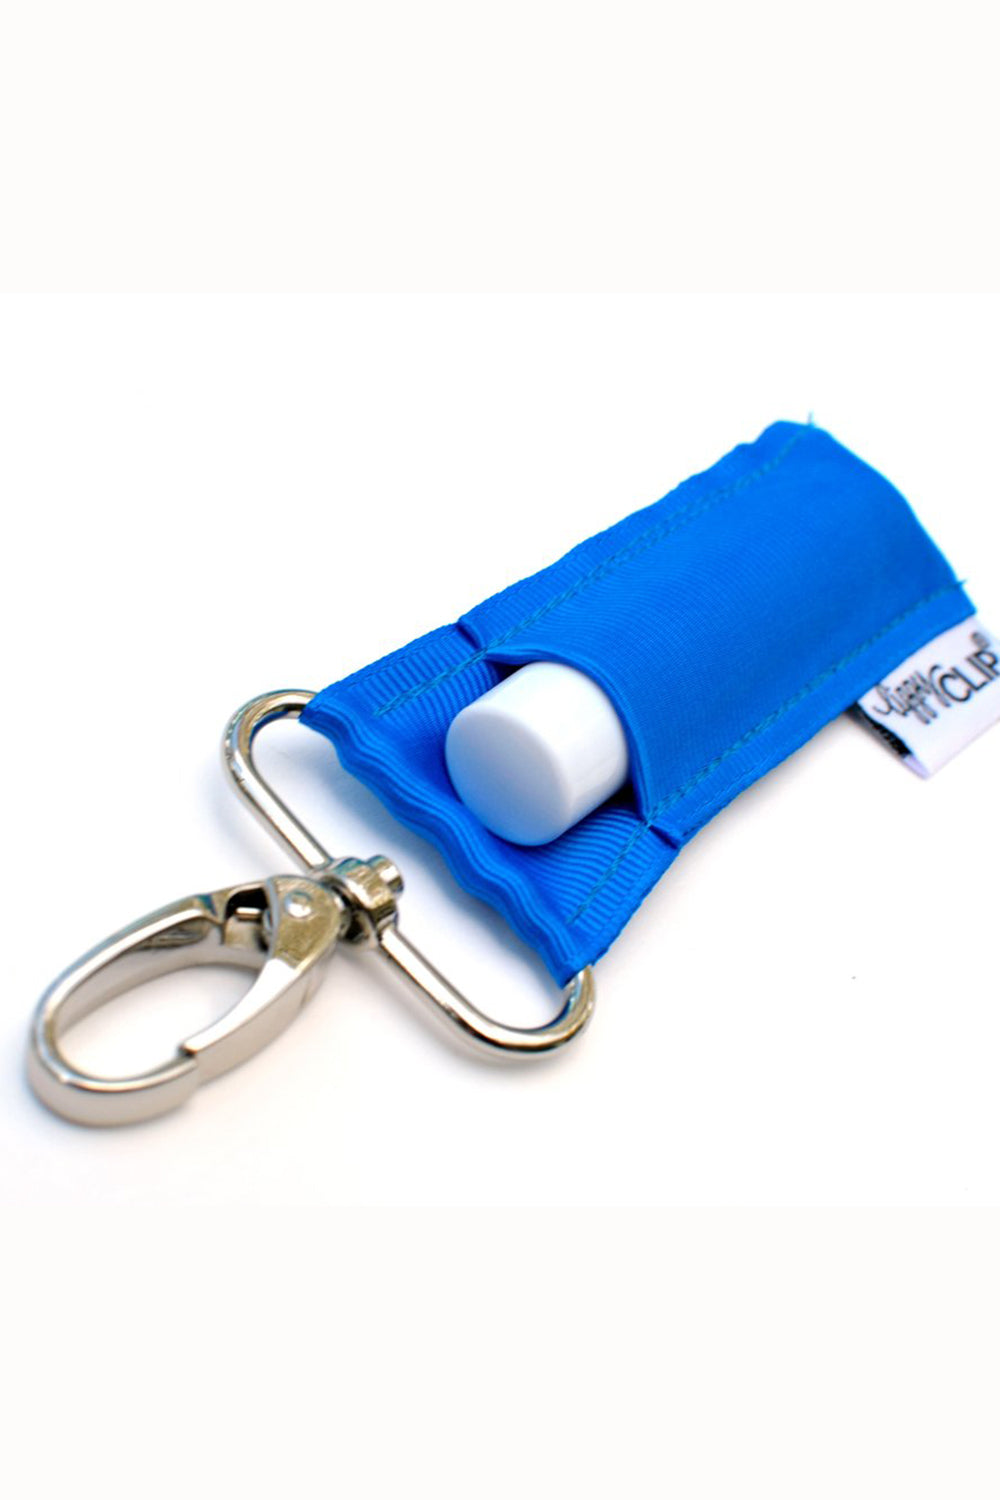 LippyClip Chapstick Holder Keychain  - Royal Blue